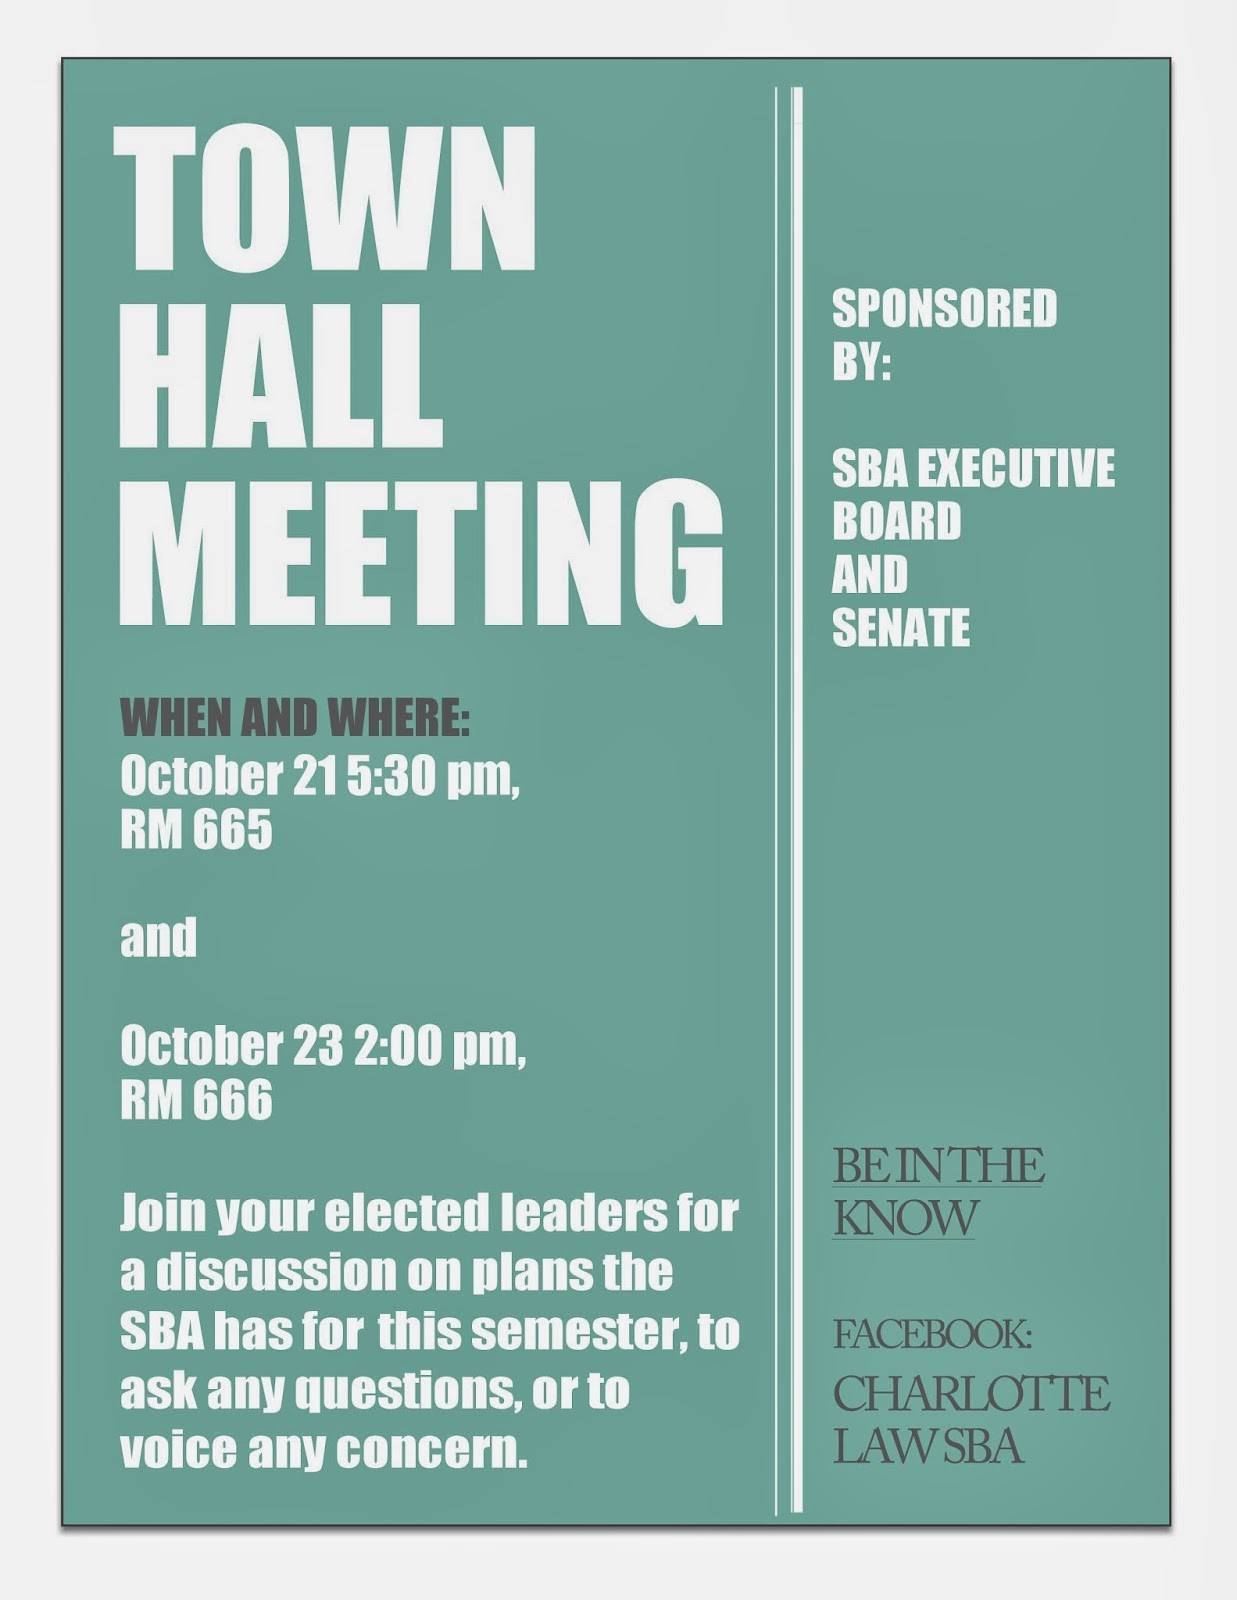 Town Hall Meeting Agenda Template Best Of Charlotte Law Sba town Hall Meeting 10 21 and 10 23